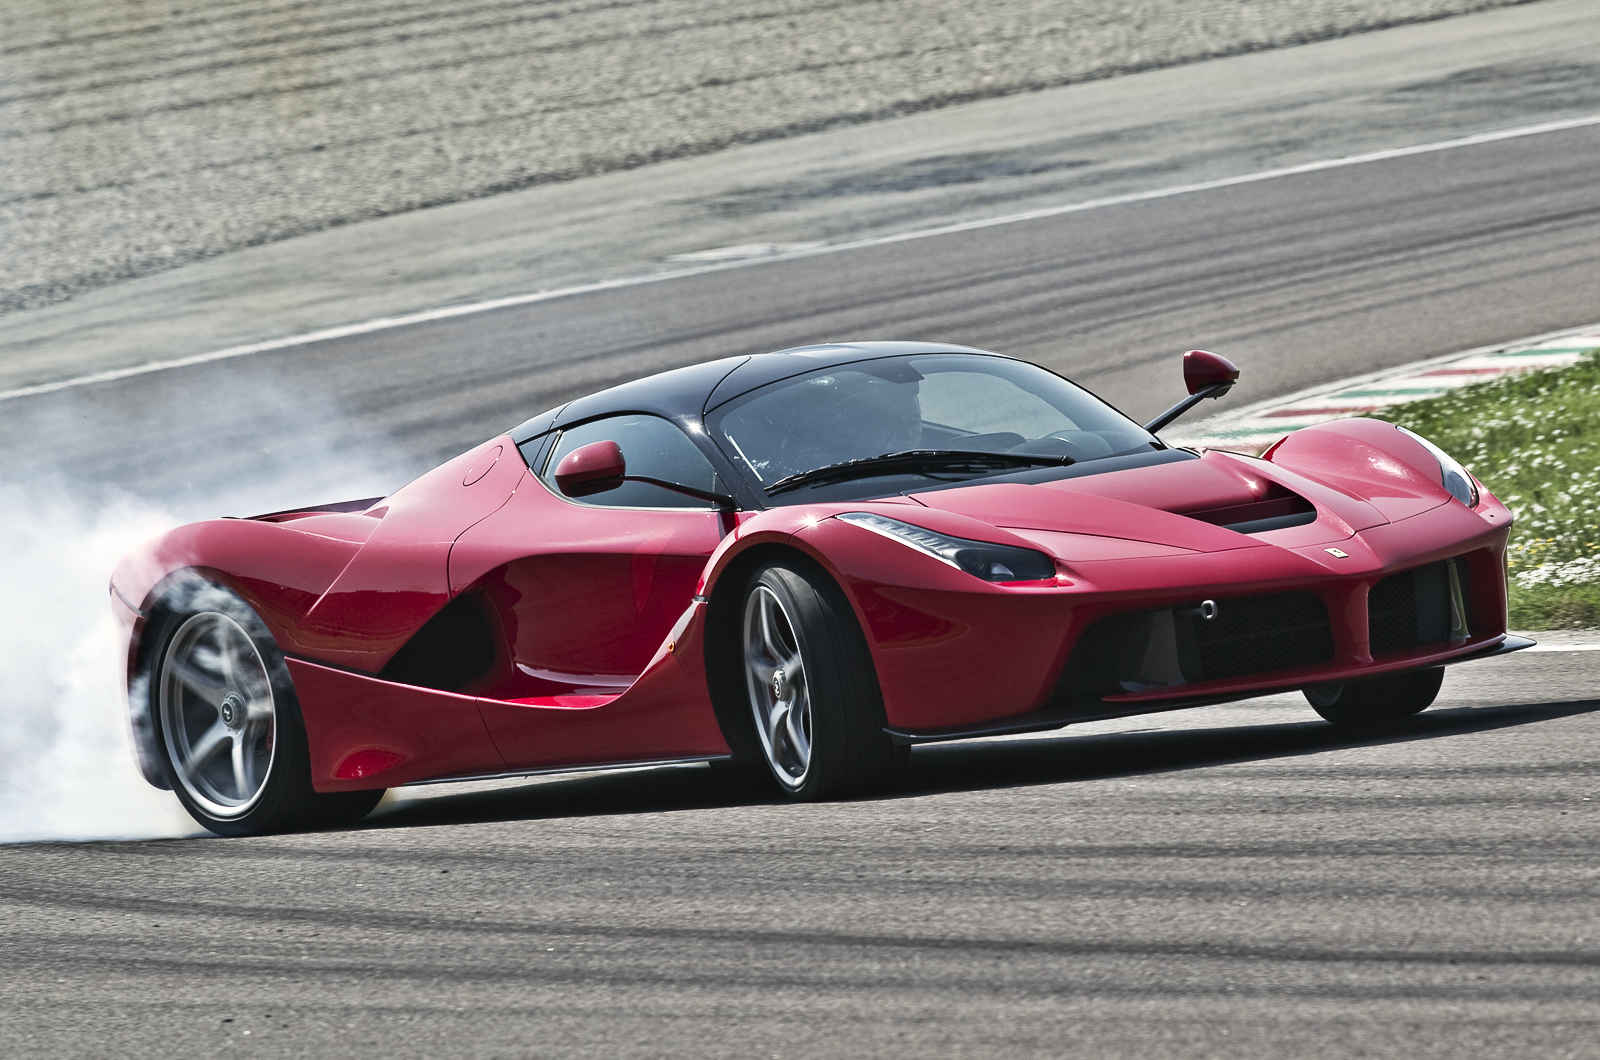 essai-video-laferrari-autocar-uk-1